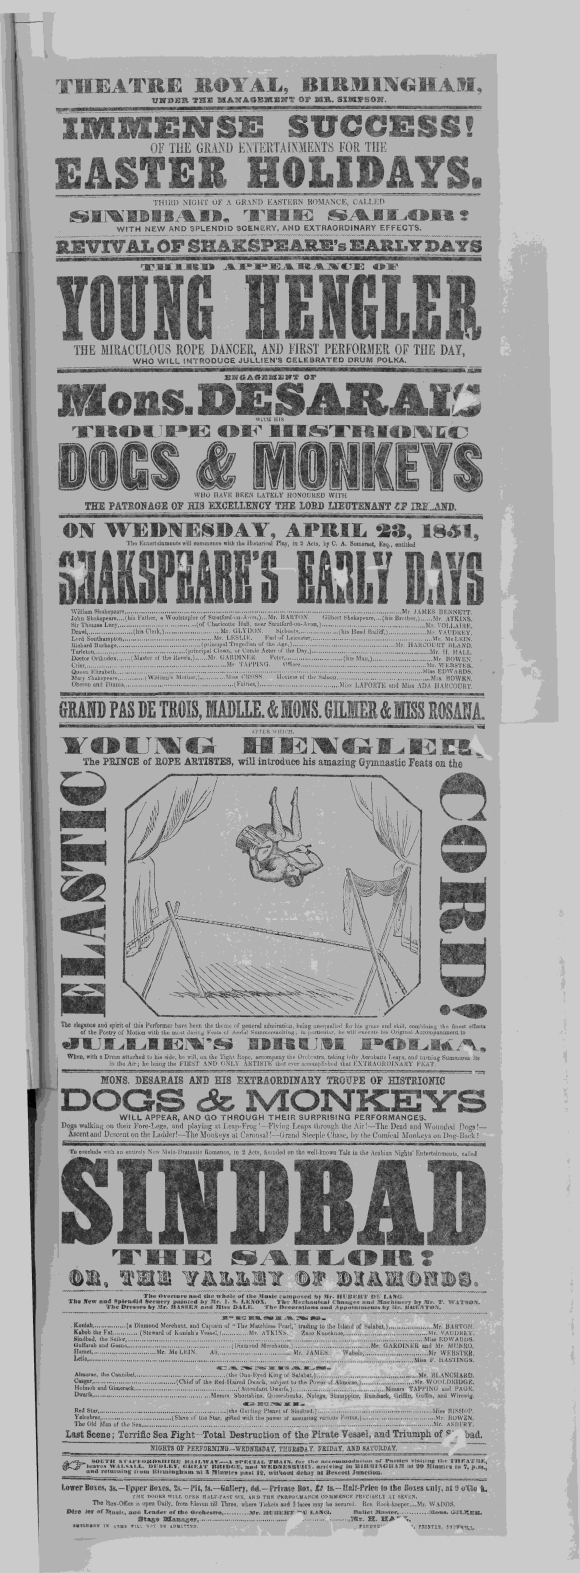 Playbill for Birmingham Theatre Royal, 22 April, 1851